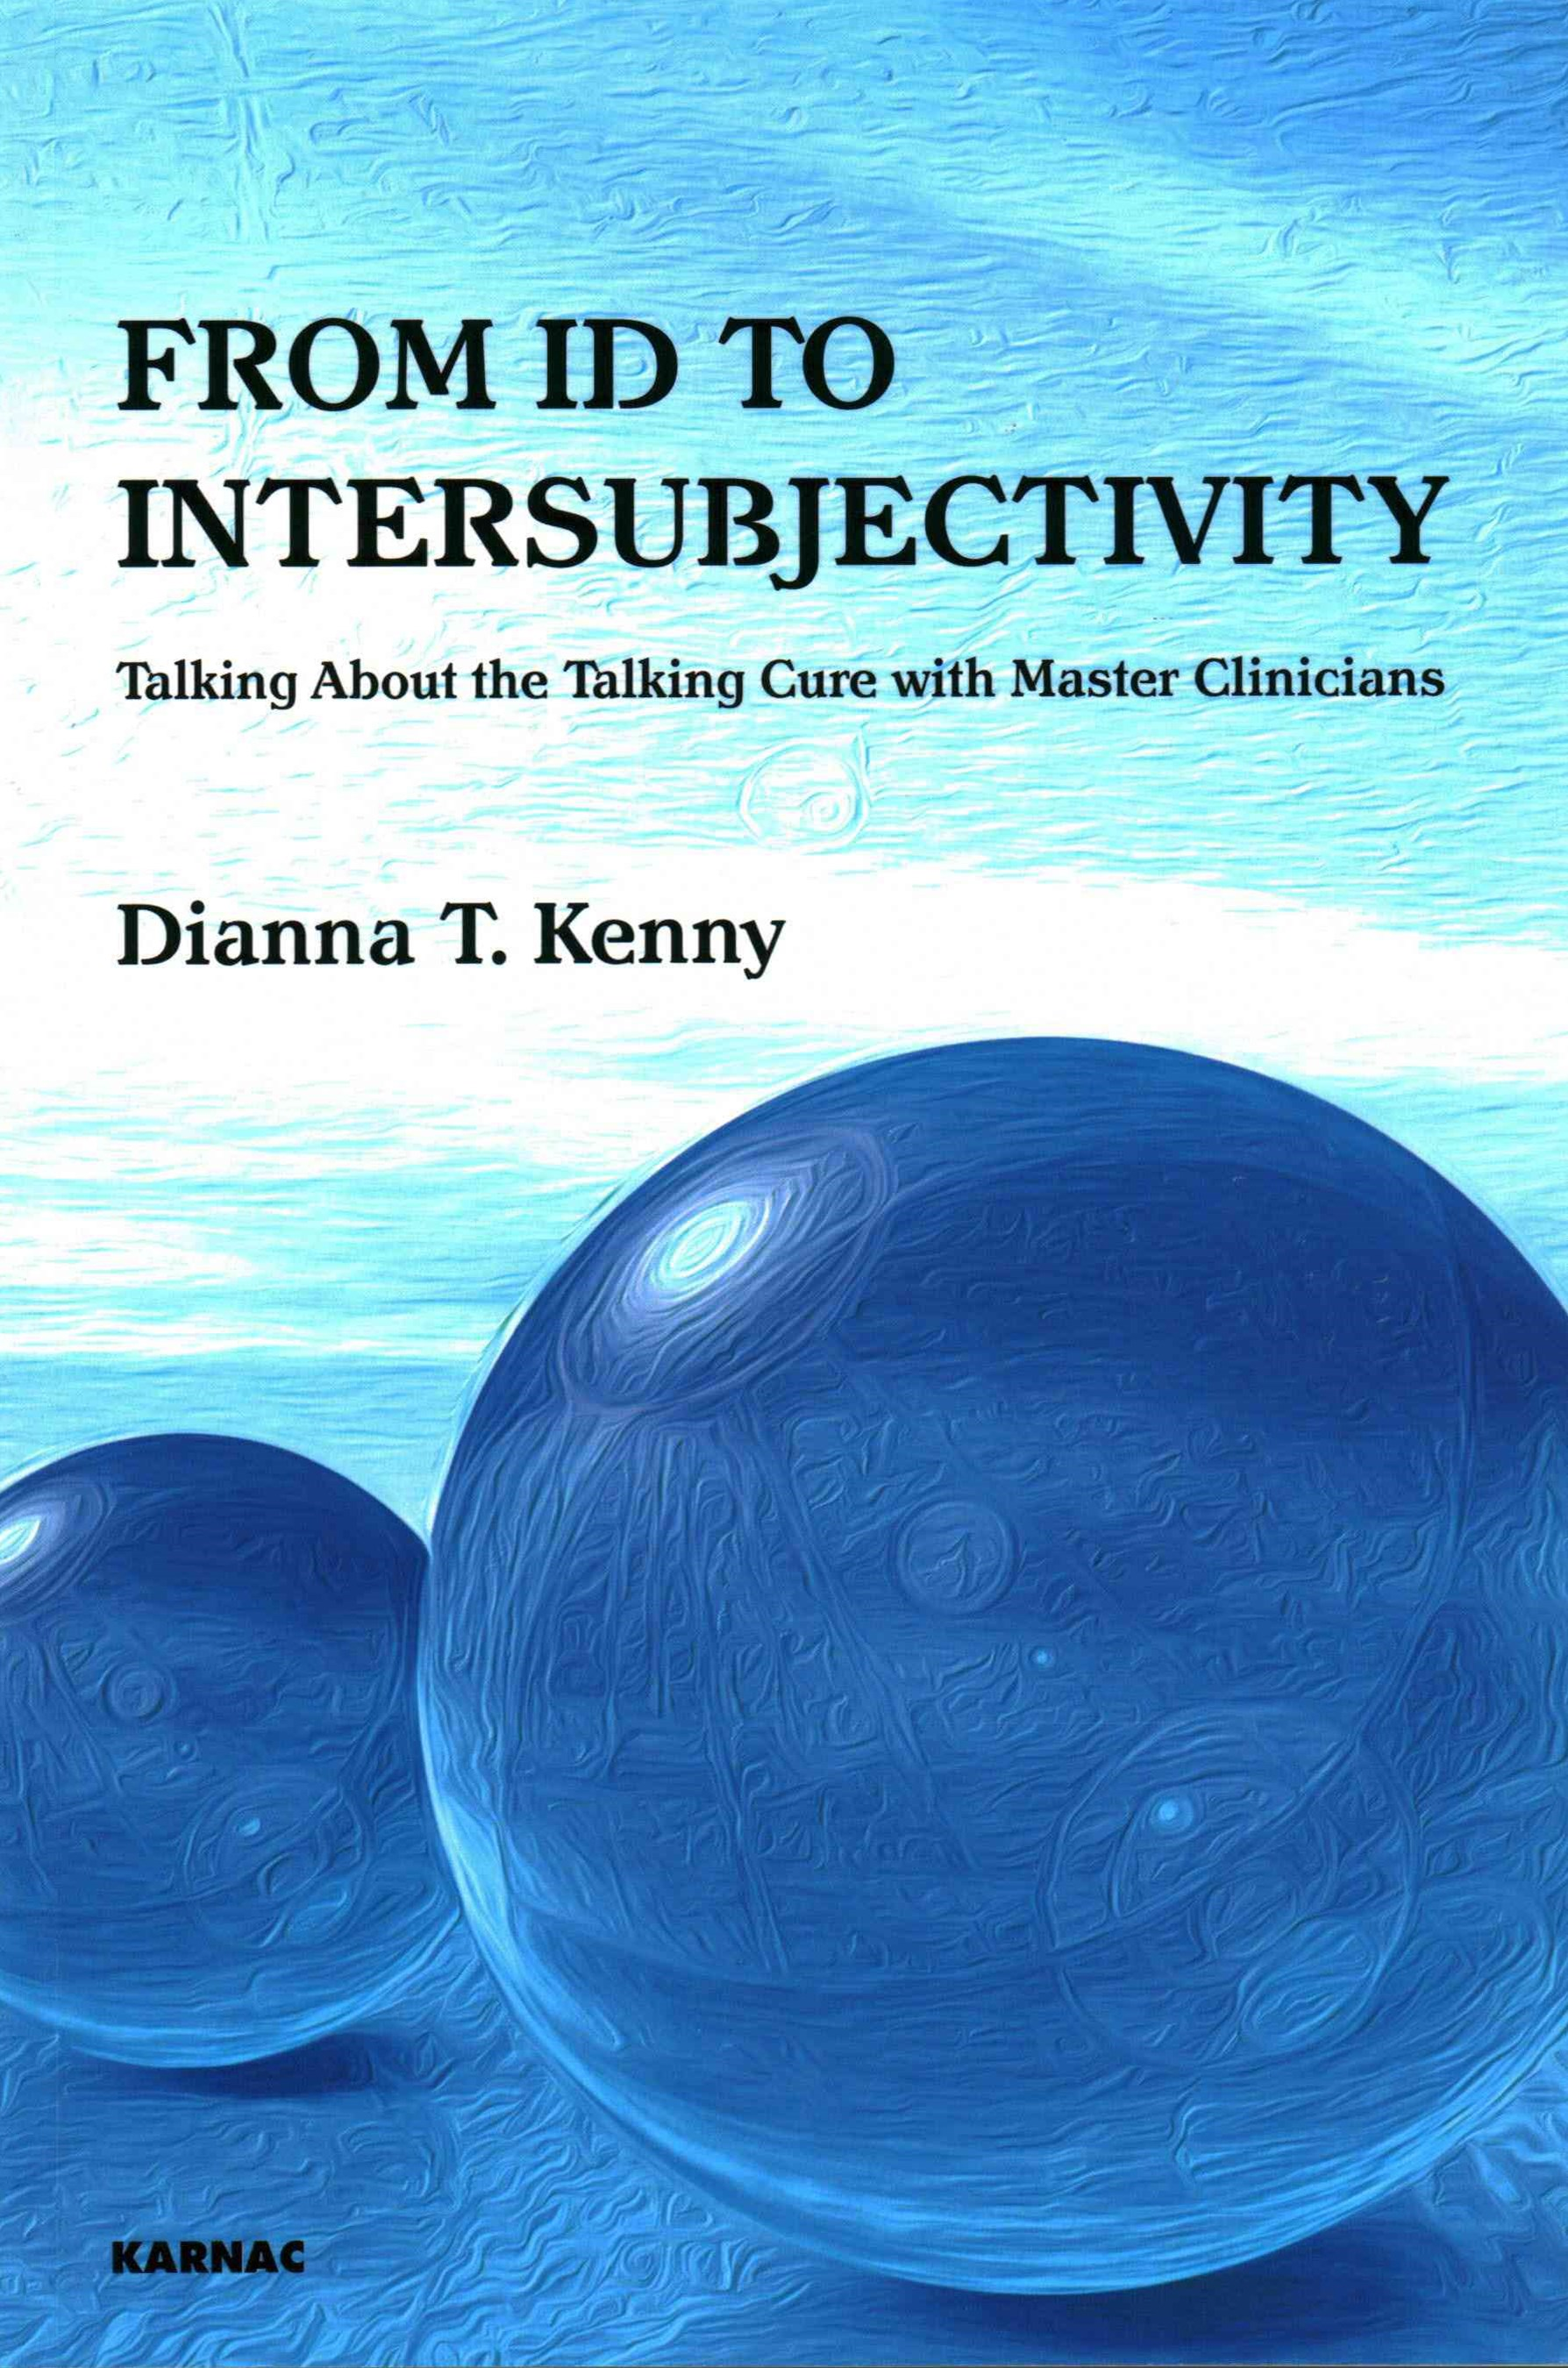 From Id to Intersubjectivity